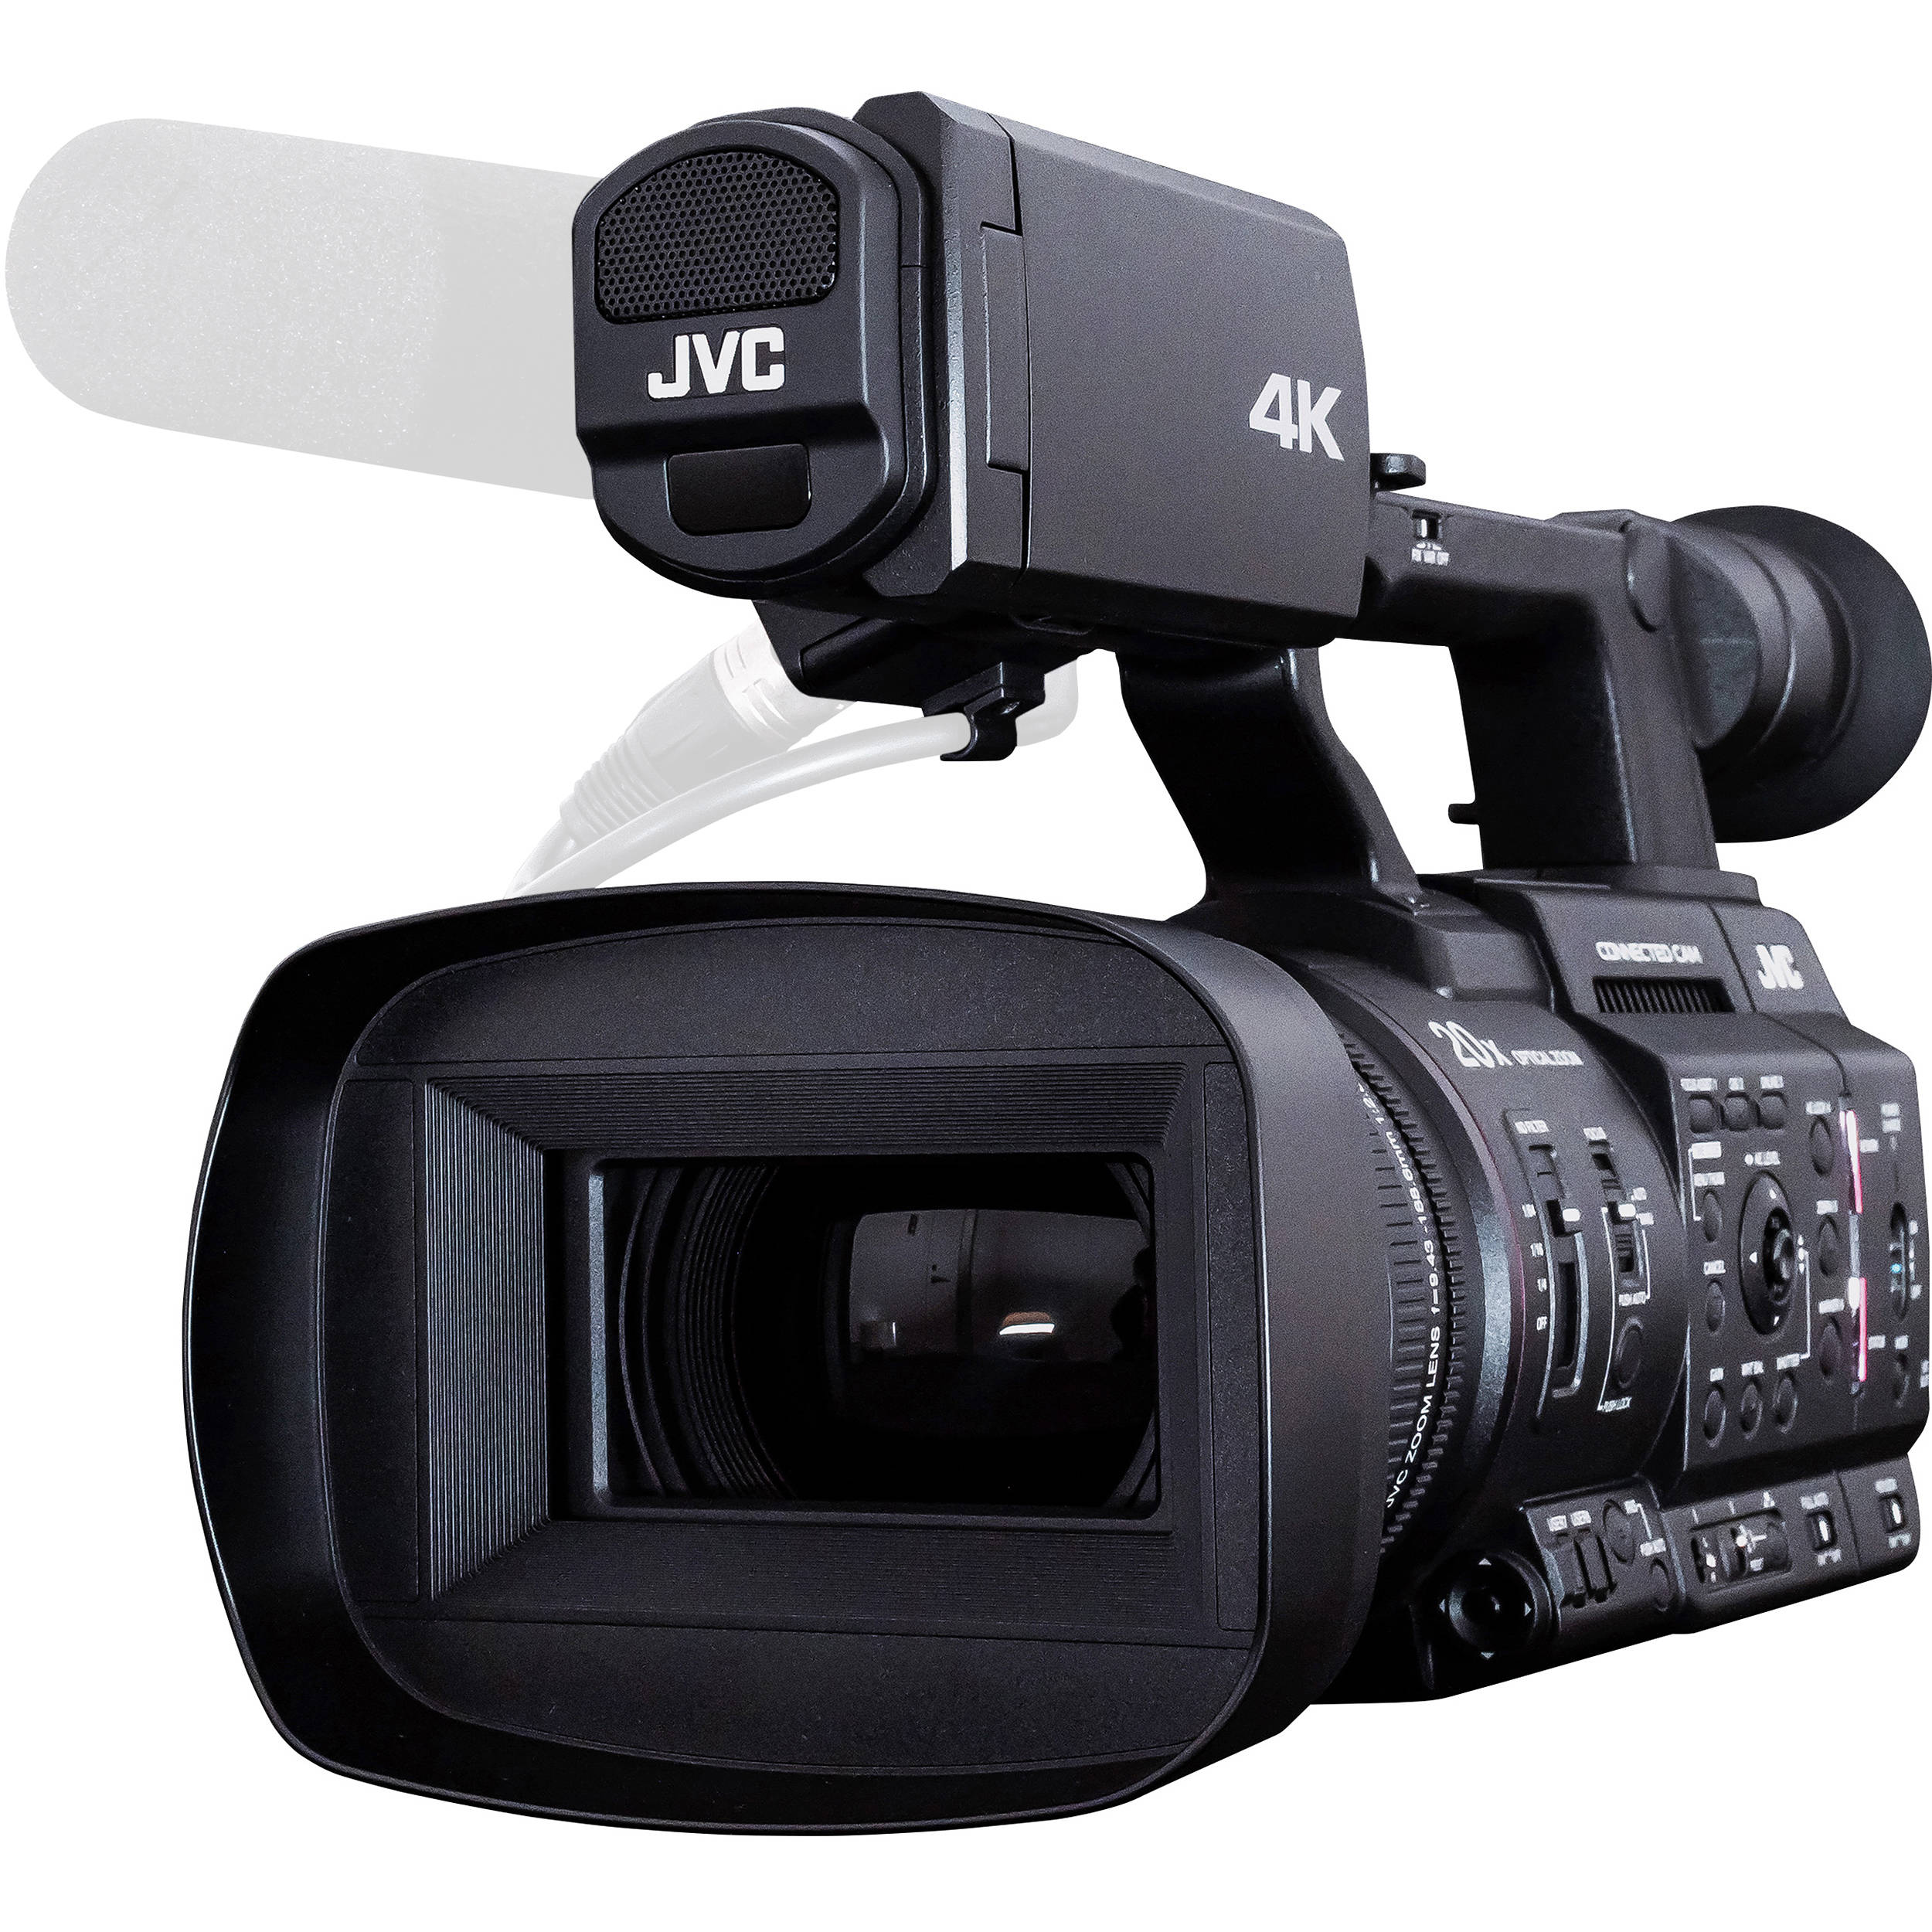 GY-HC500 & GY-HC550: JVC's new cameras break the 10-bit barrier + add ProRes & J-Log1 (10-bit) for HDR 10